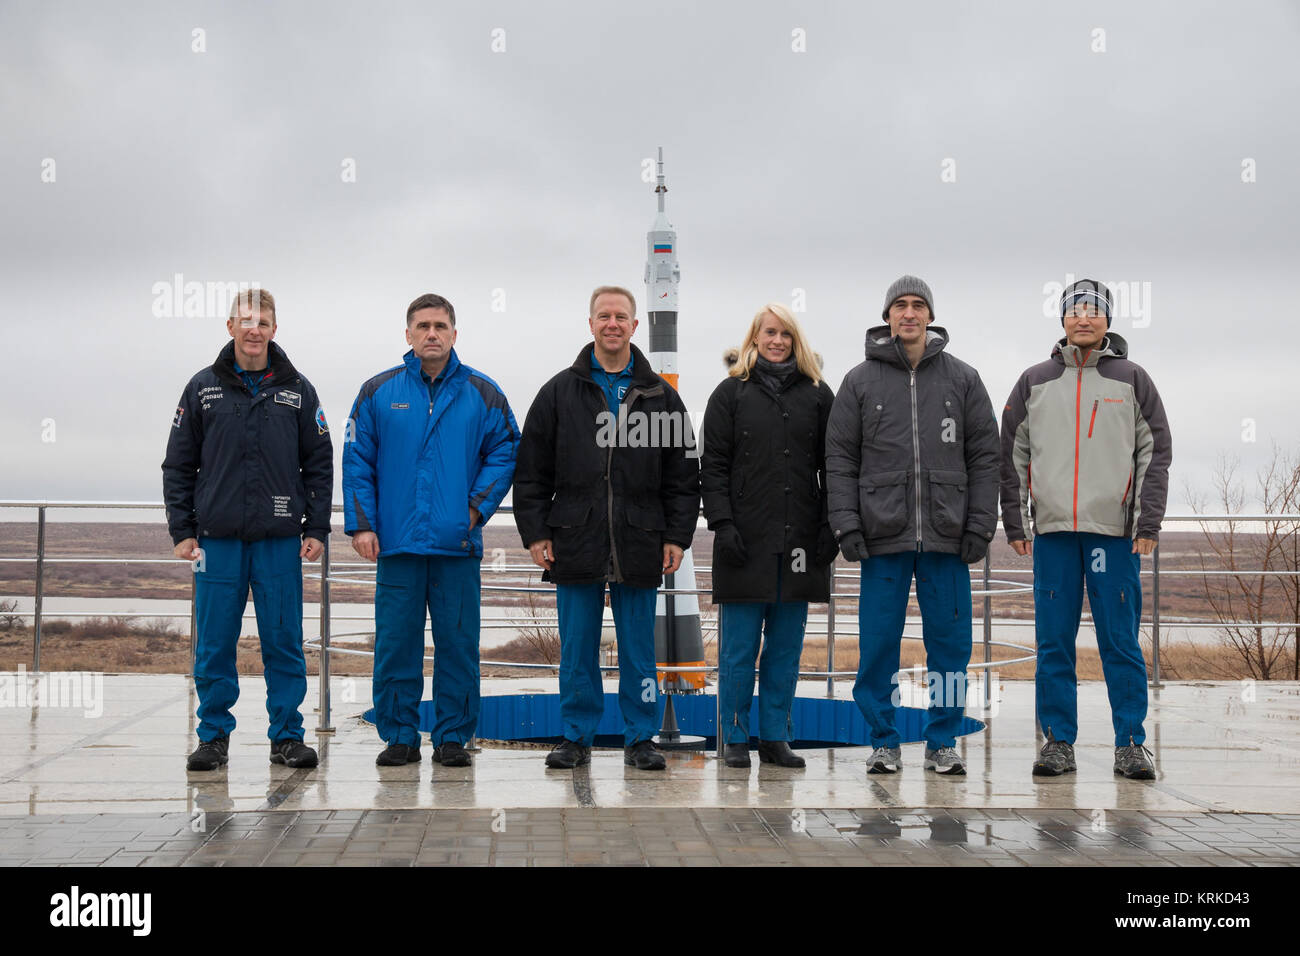 Soyuz TMA-19M crew and backup crew in front of a Soyuz rocket statue - Stock Image